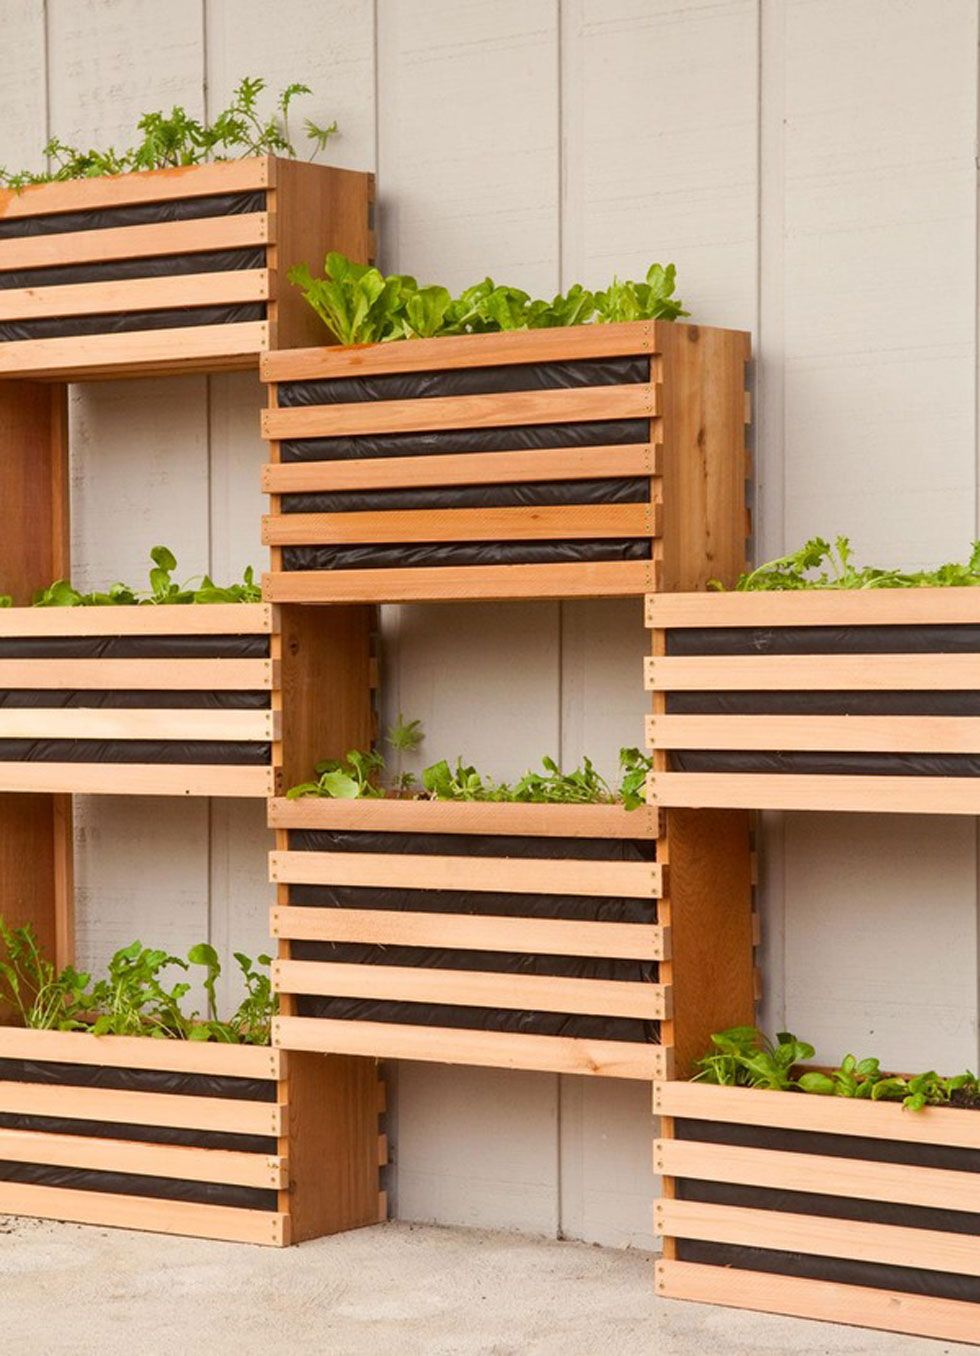 26 creative ways to plant a vertical garden how to make a vertical garden - Wall Garden